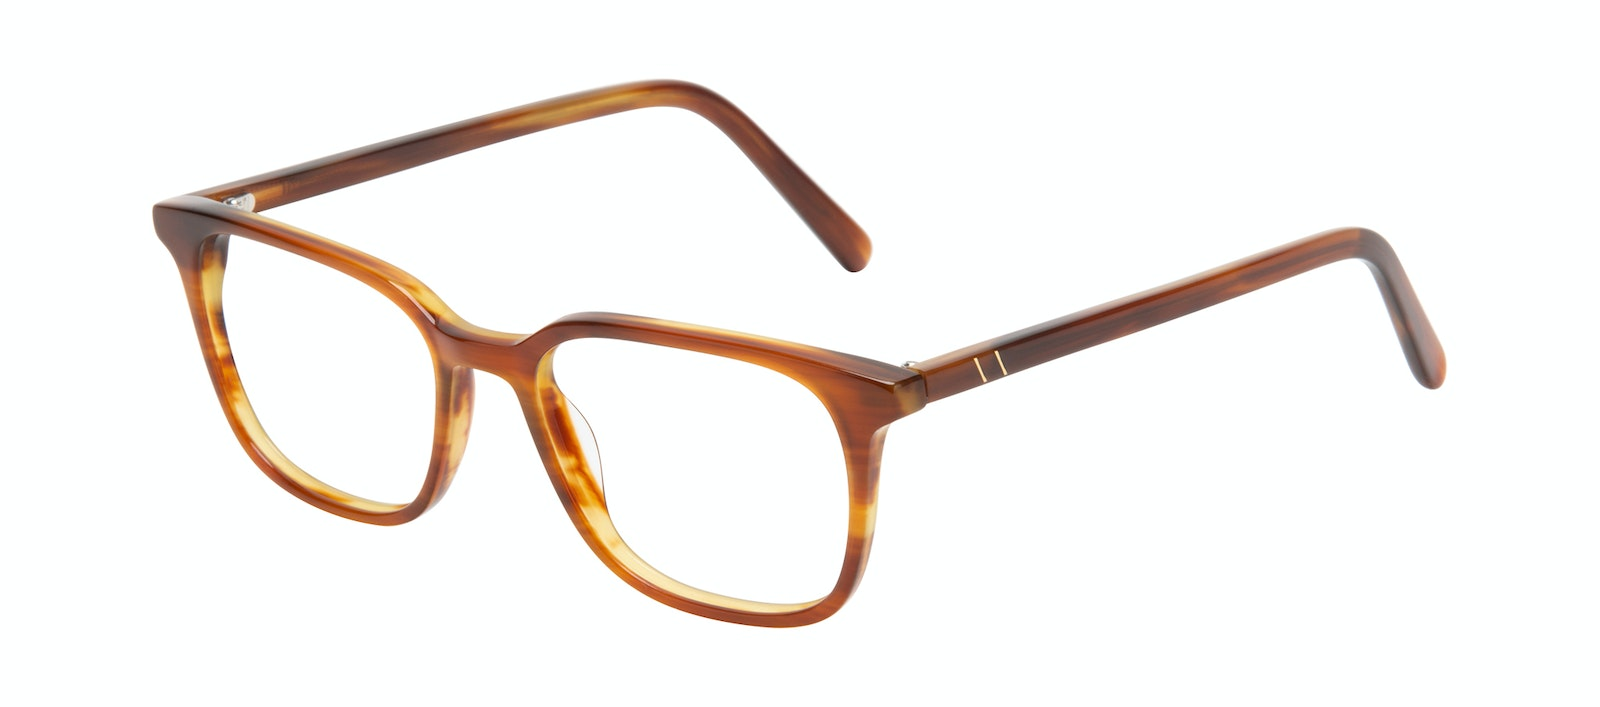 20fdabdd26081 Affordable Fashion Glasses Square Eyeglasses Men Choice Havana Tilt